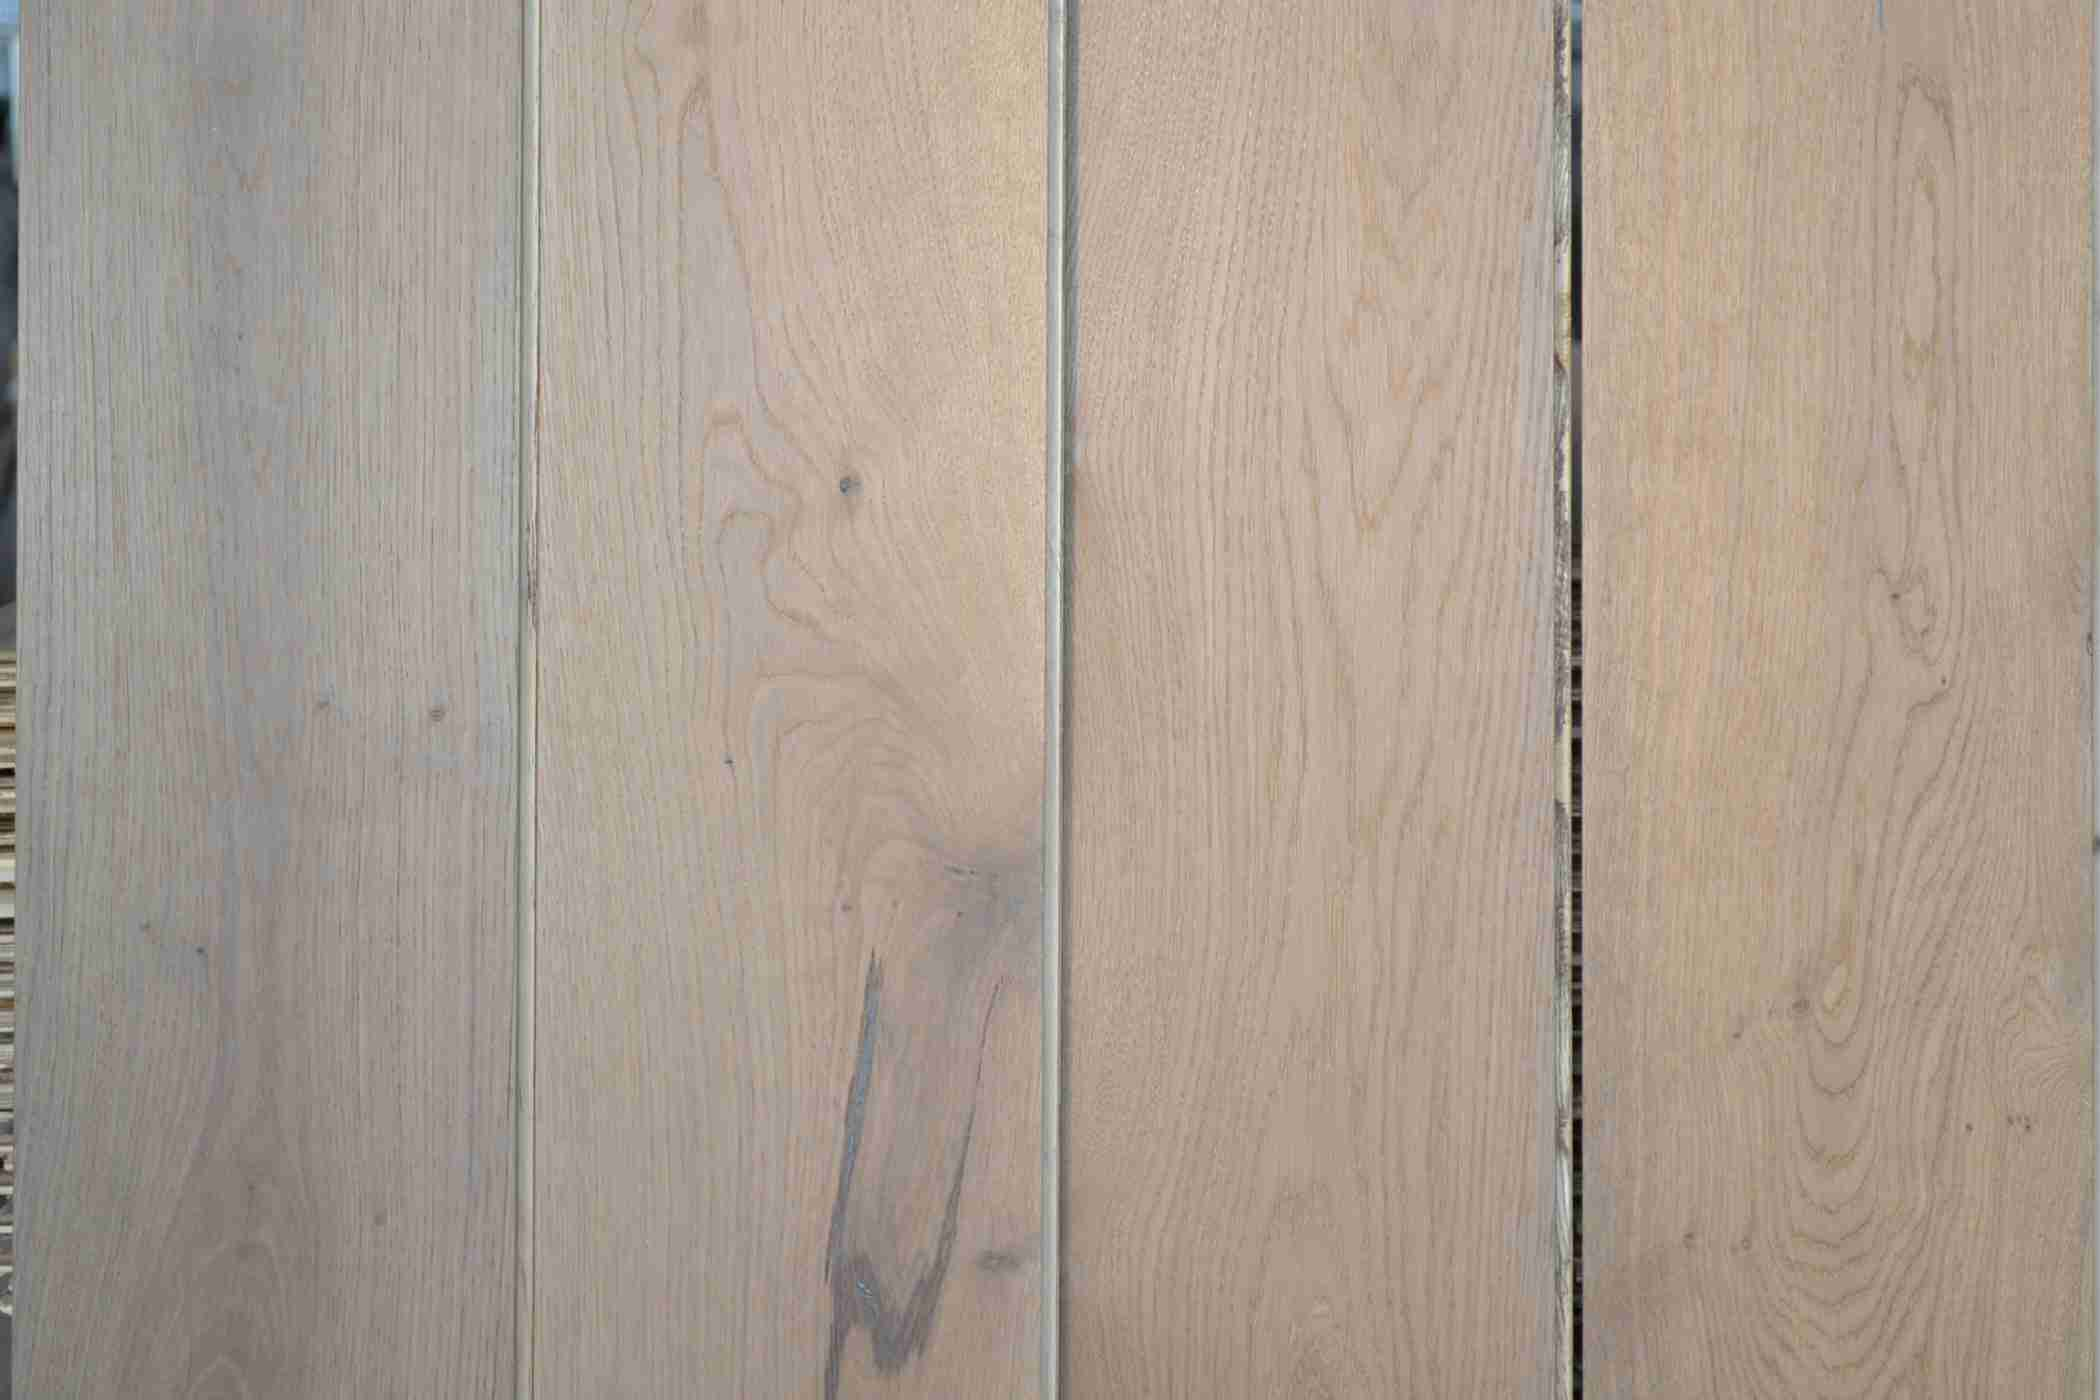 3 layer Oak Engineered Wood Flooring, 14; 15 mm thick